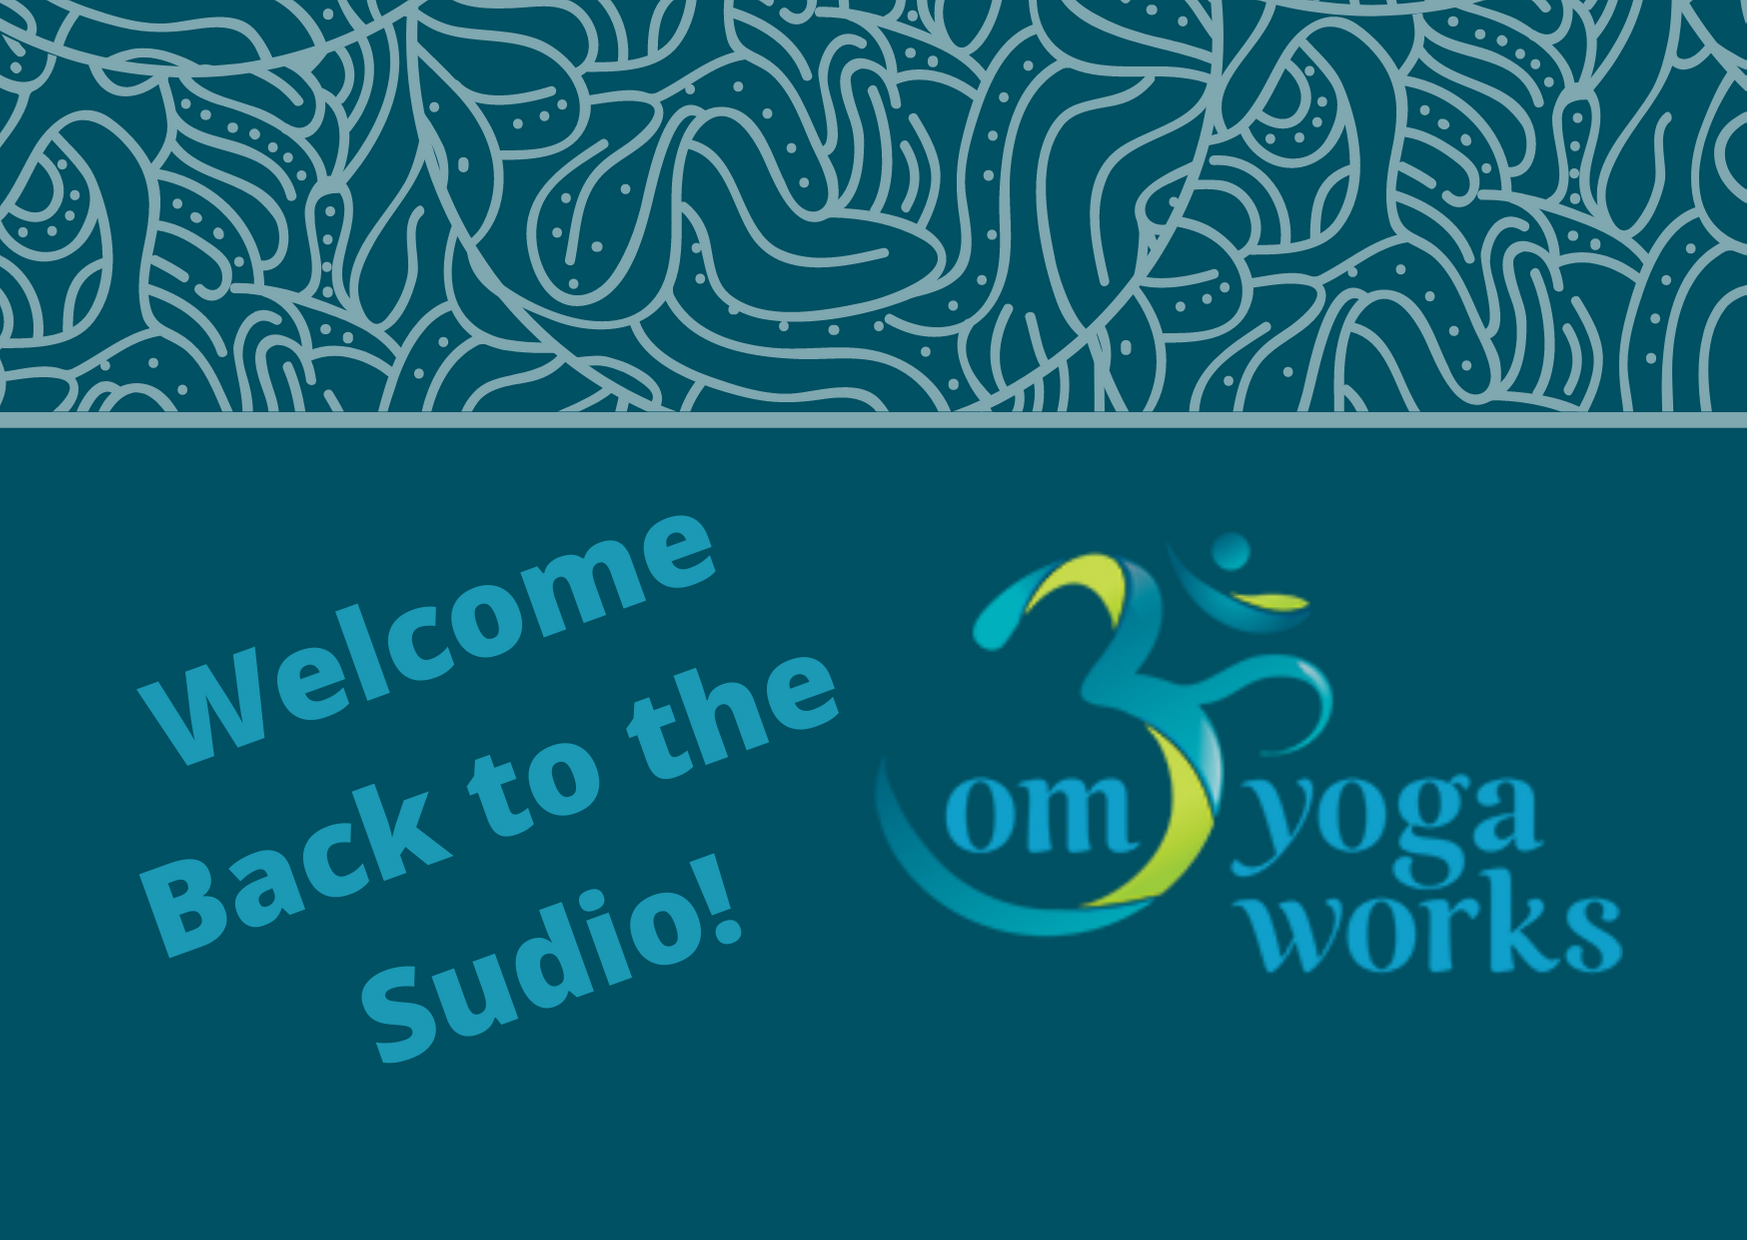 Om Newsletter - Welcome Back Image